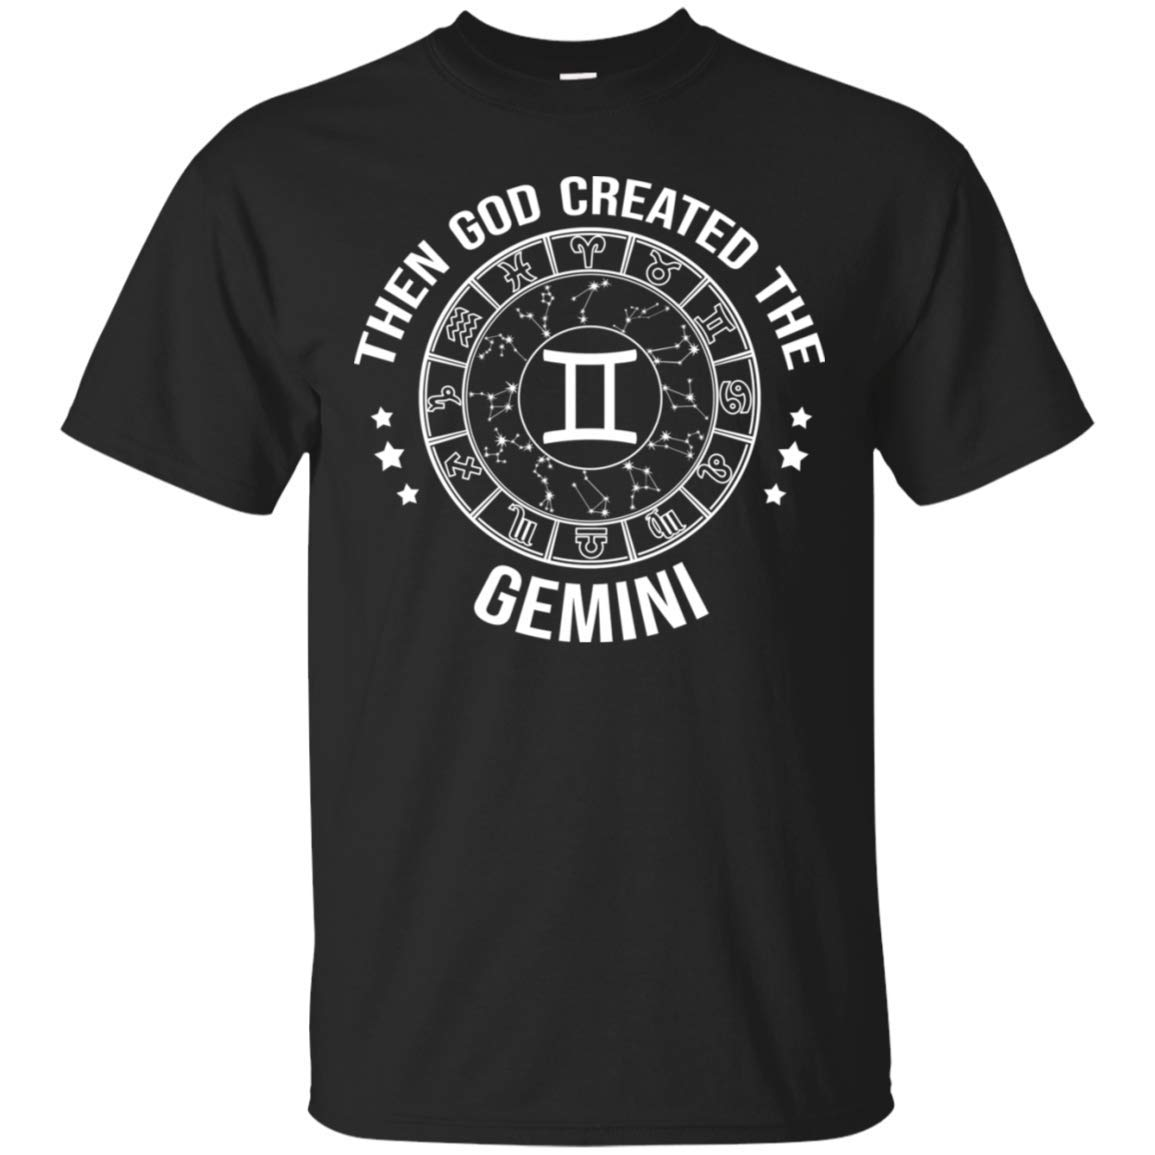 Funny Birthday Gif Then God Created The D Pride T Black Shirts